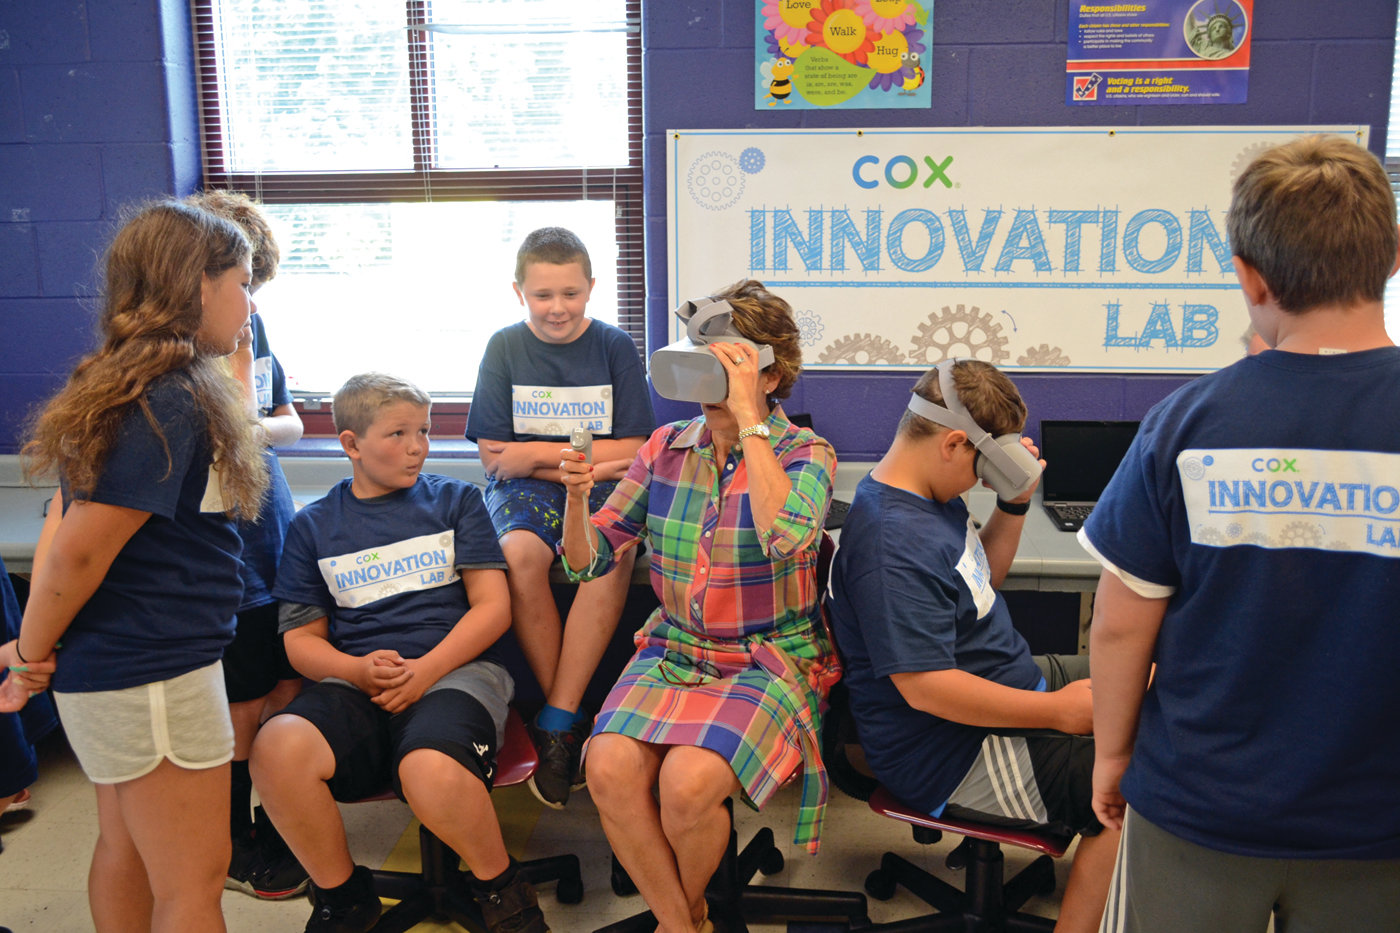 WHERE IS SHE? Debra Cornish, vice president of human resources for Cox Communications, takes a VR headset for a whirl, getting some help from Boys and Girl Club members.